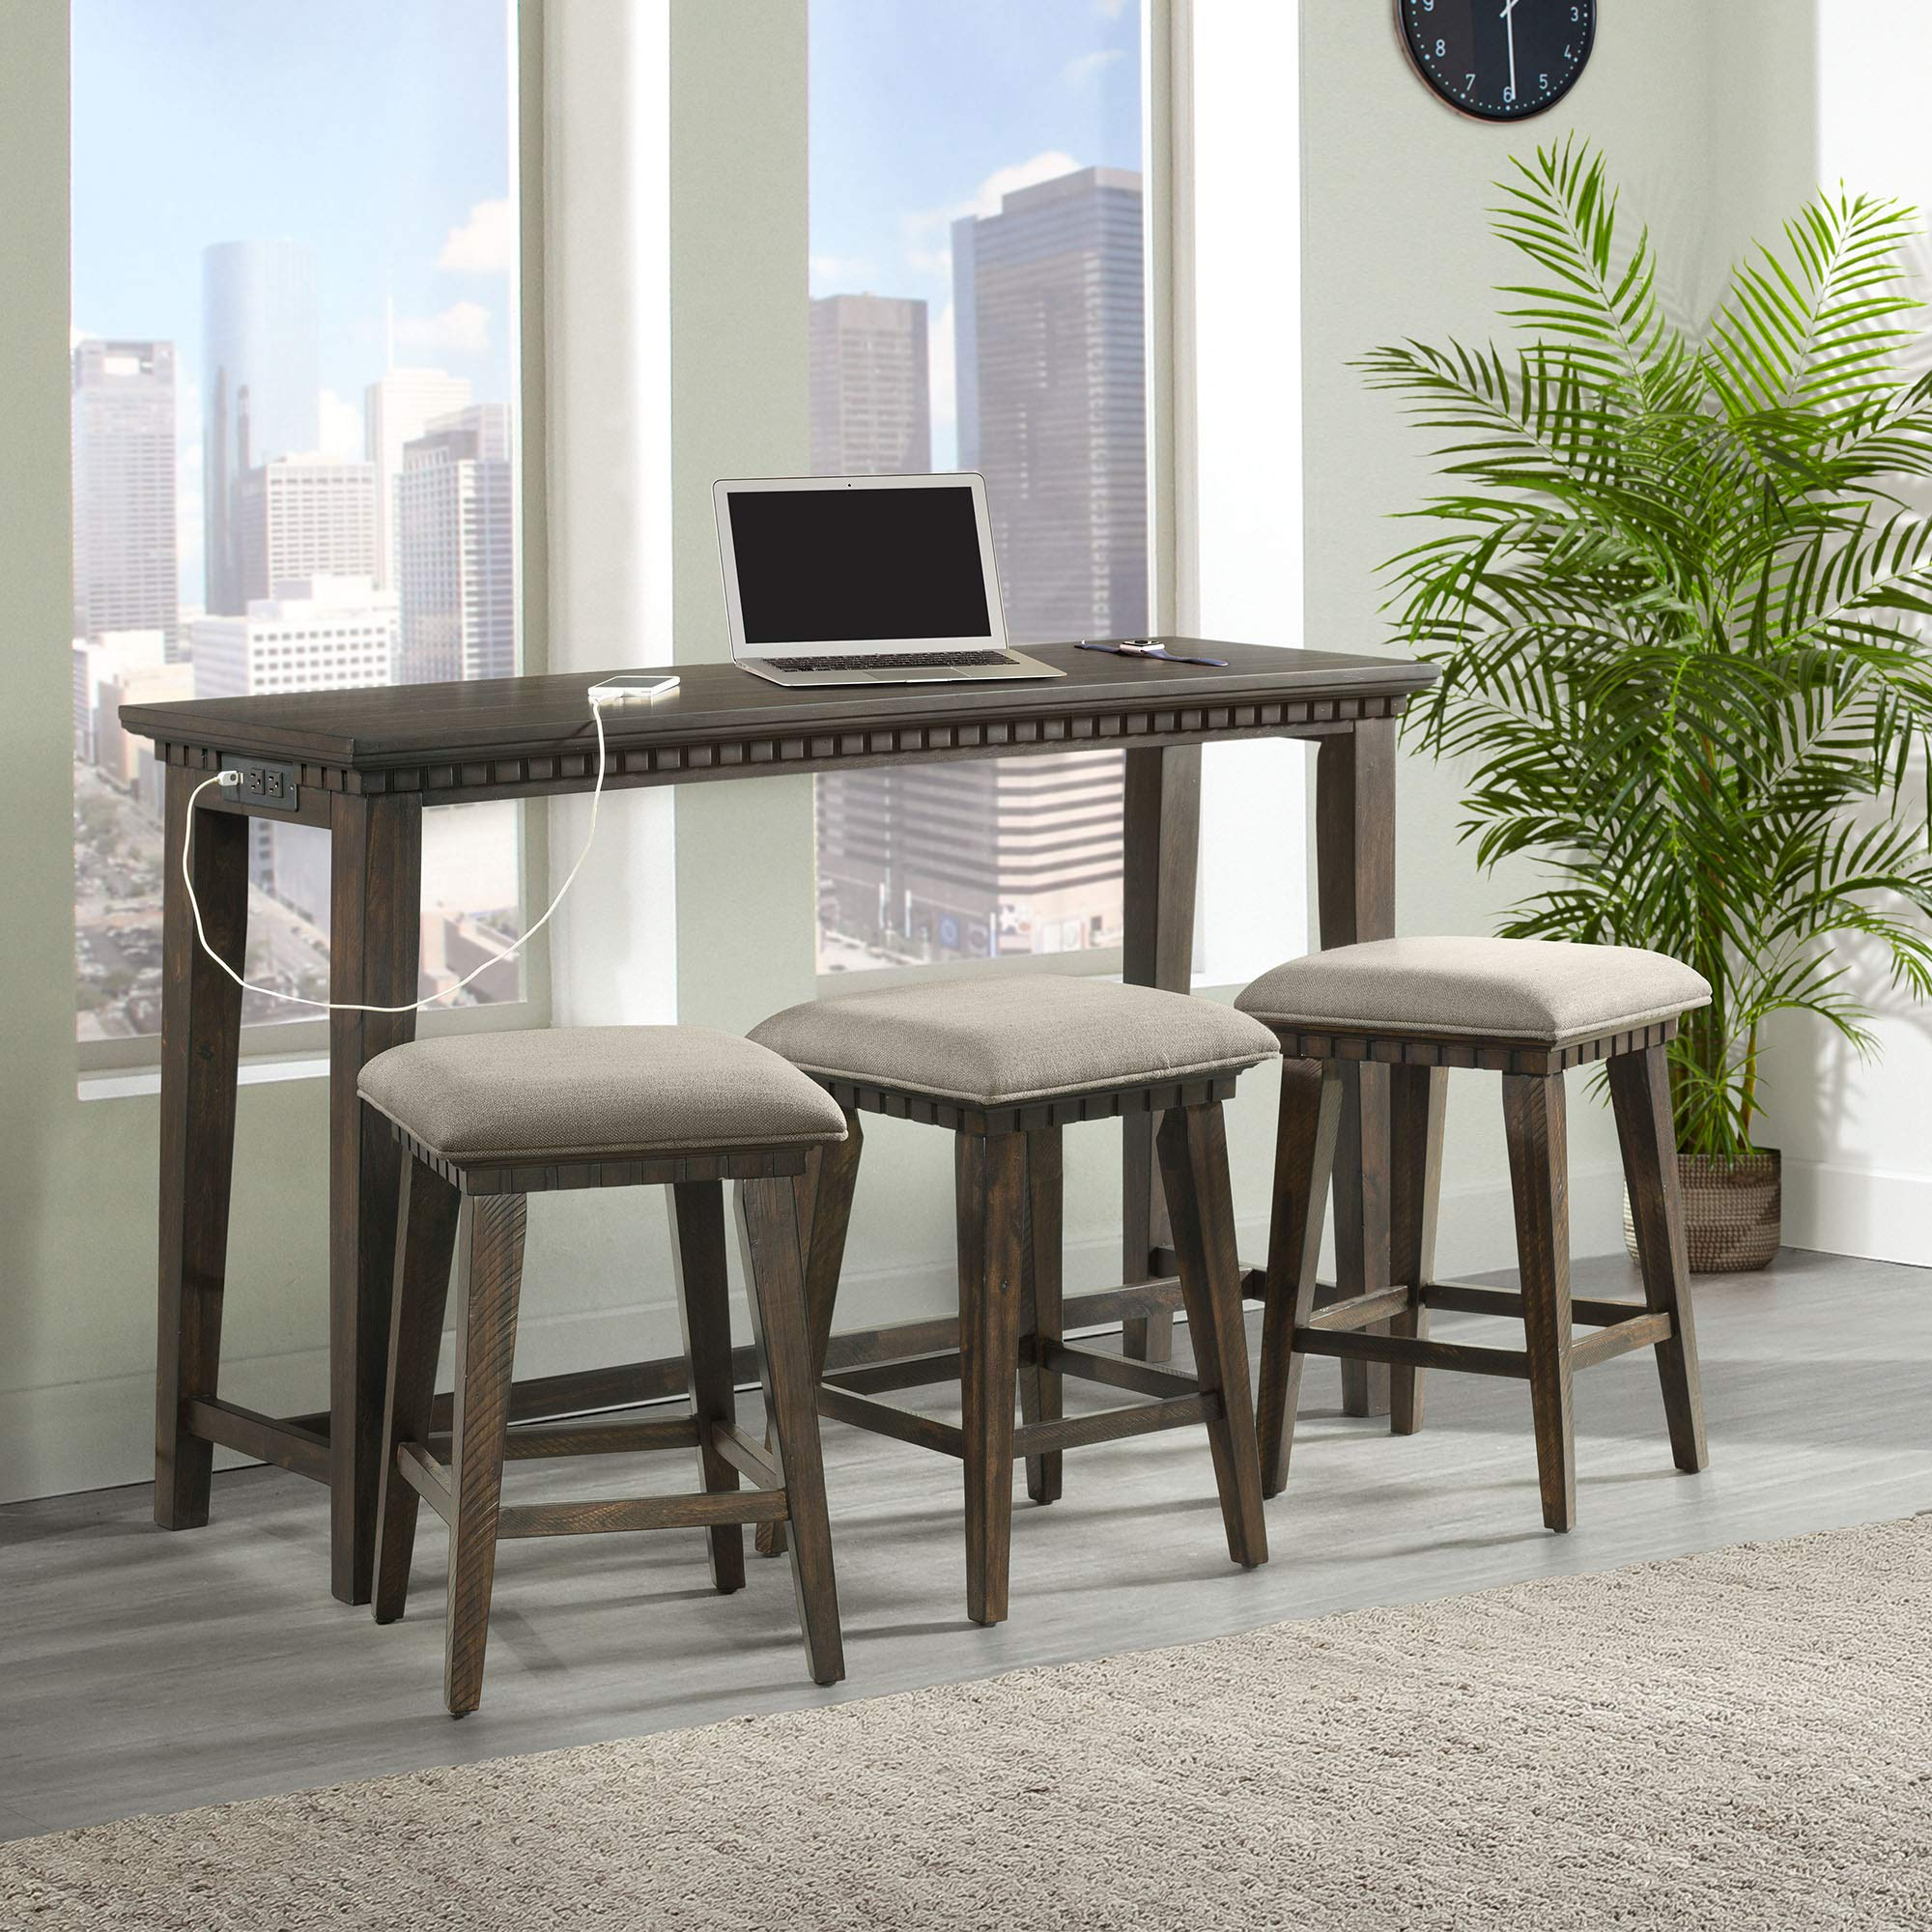 Picket House Furnishings Steele Multipurpose Bar Table Set by Picket House Furnishings